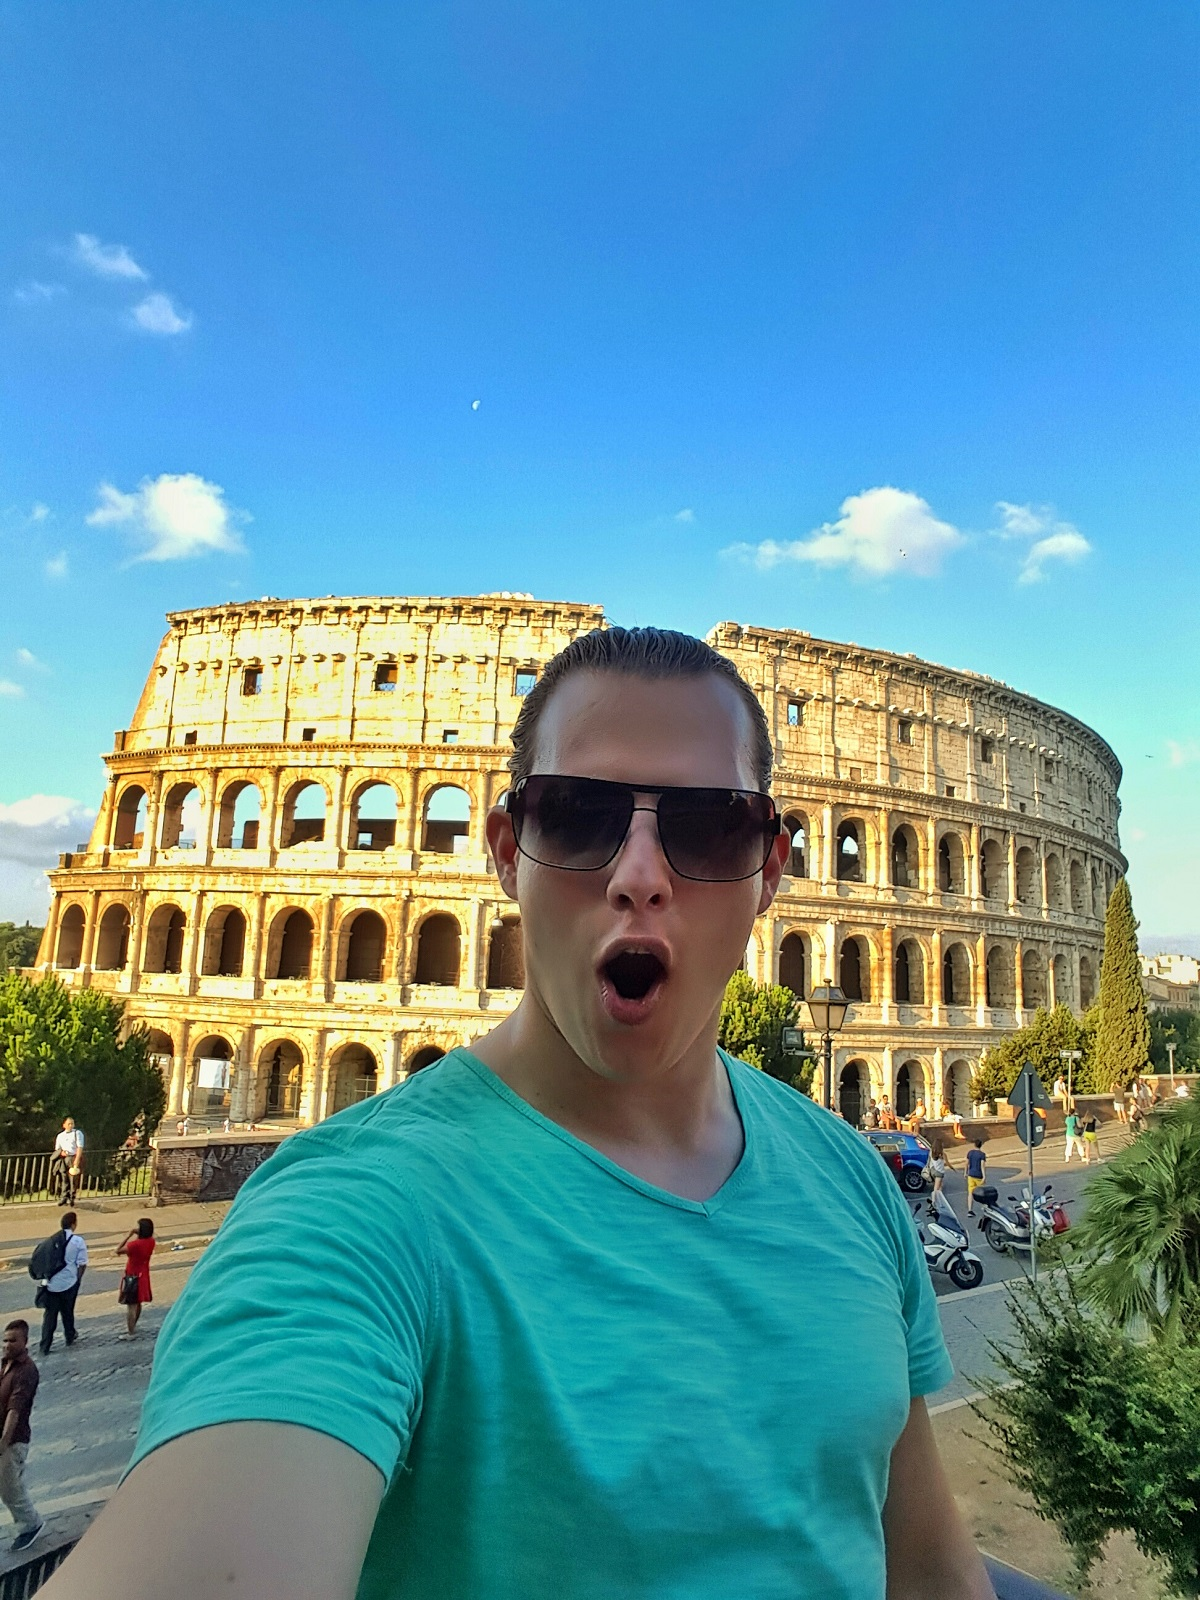 Selfie at the Colosseum